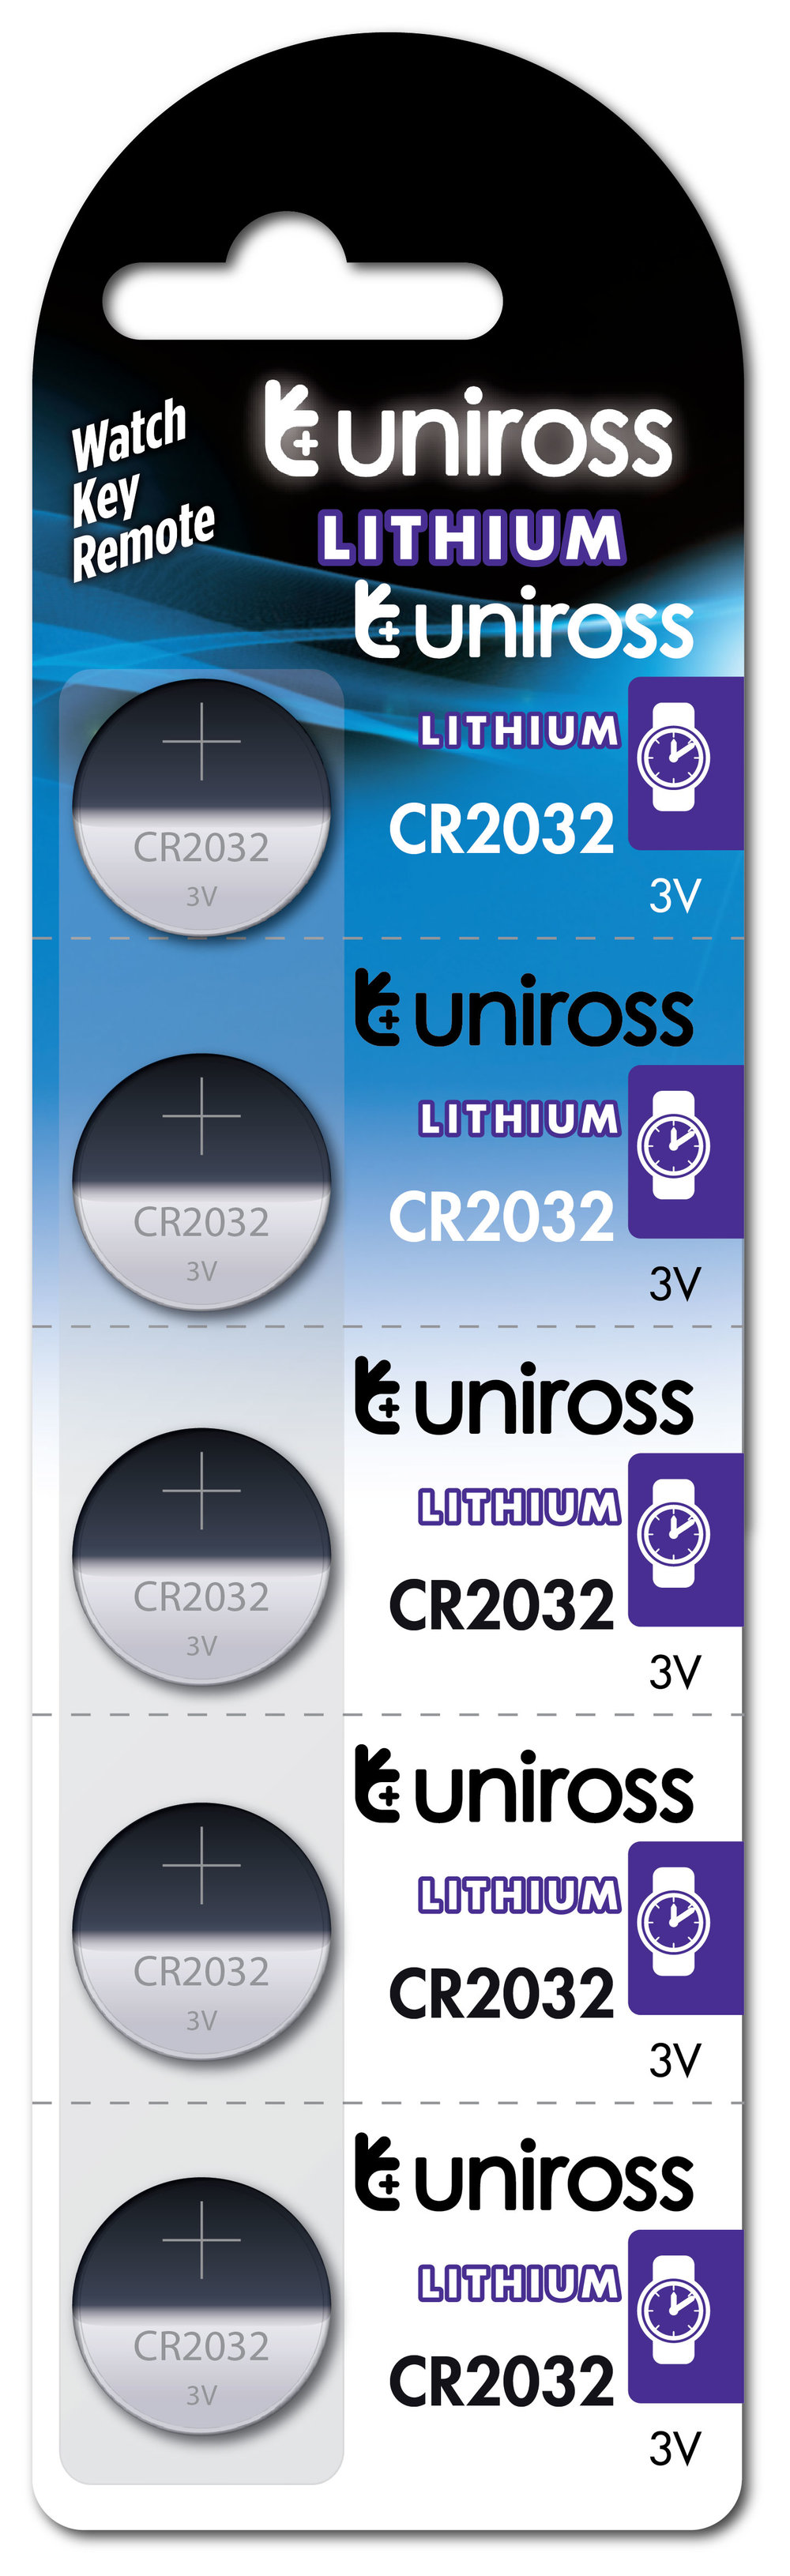 Button_Cell_[U5CR2032] UNIROSS BP5 CR2032 LITHIUM.jpg